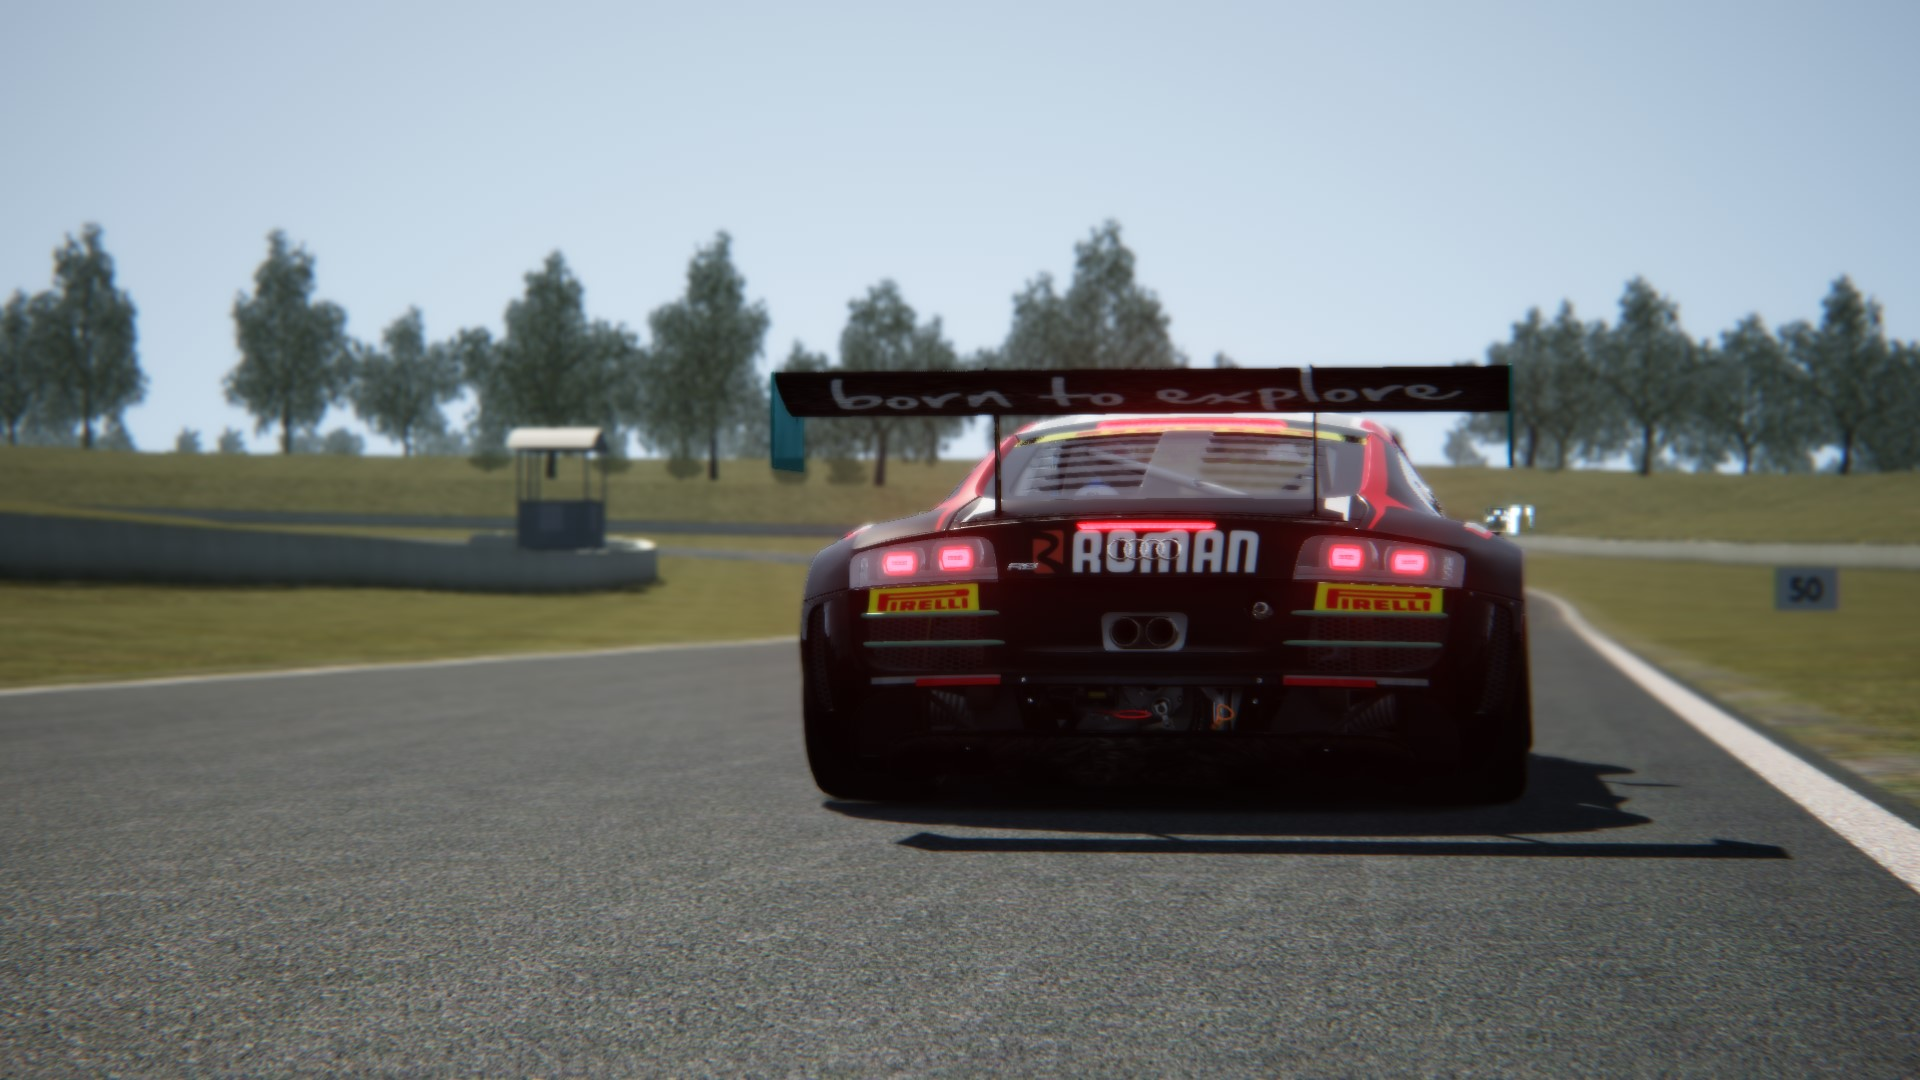 Screenshot_ks_audi_r8_lms_eastern_creek2014_25-11-115-12-6-33.jpg